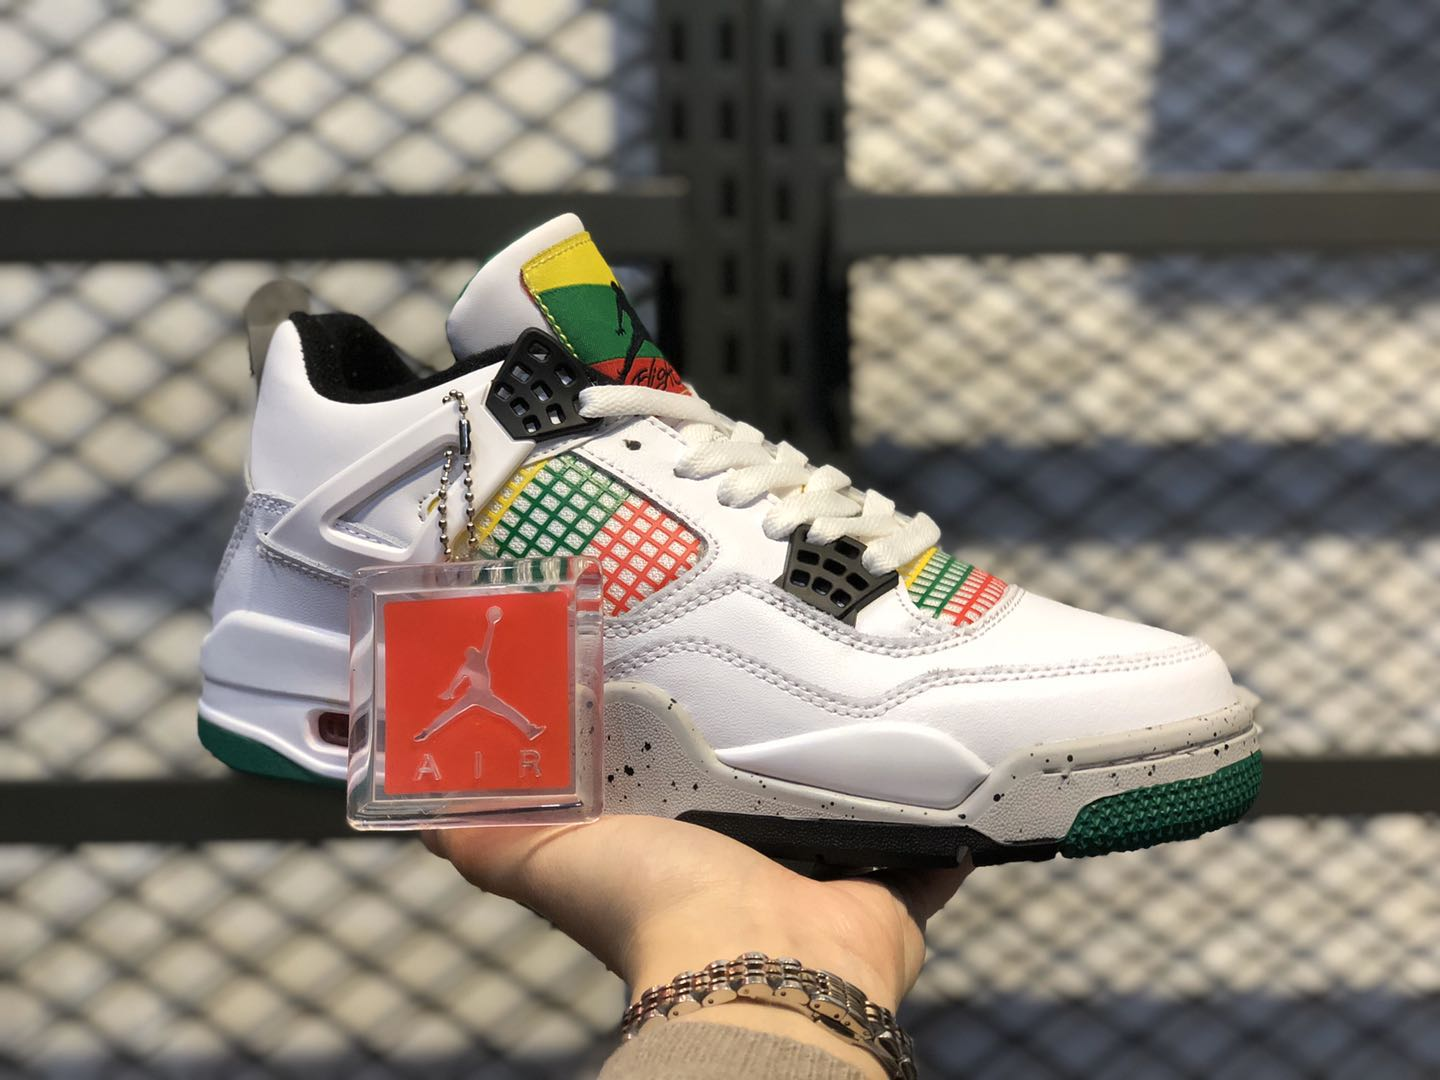 Air Jordan 4 WMNS White/University Red-Lucid Green-Black AQ9129-100